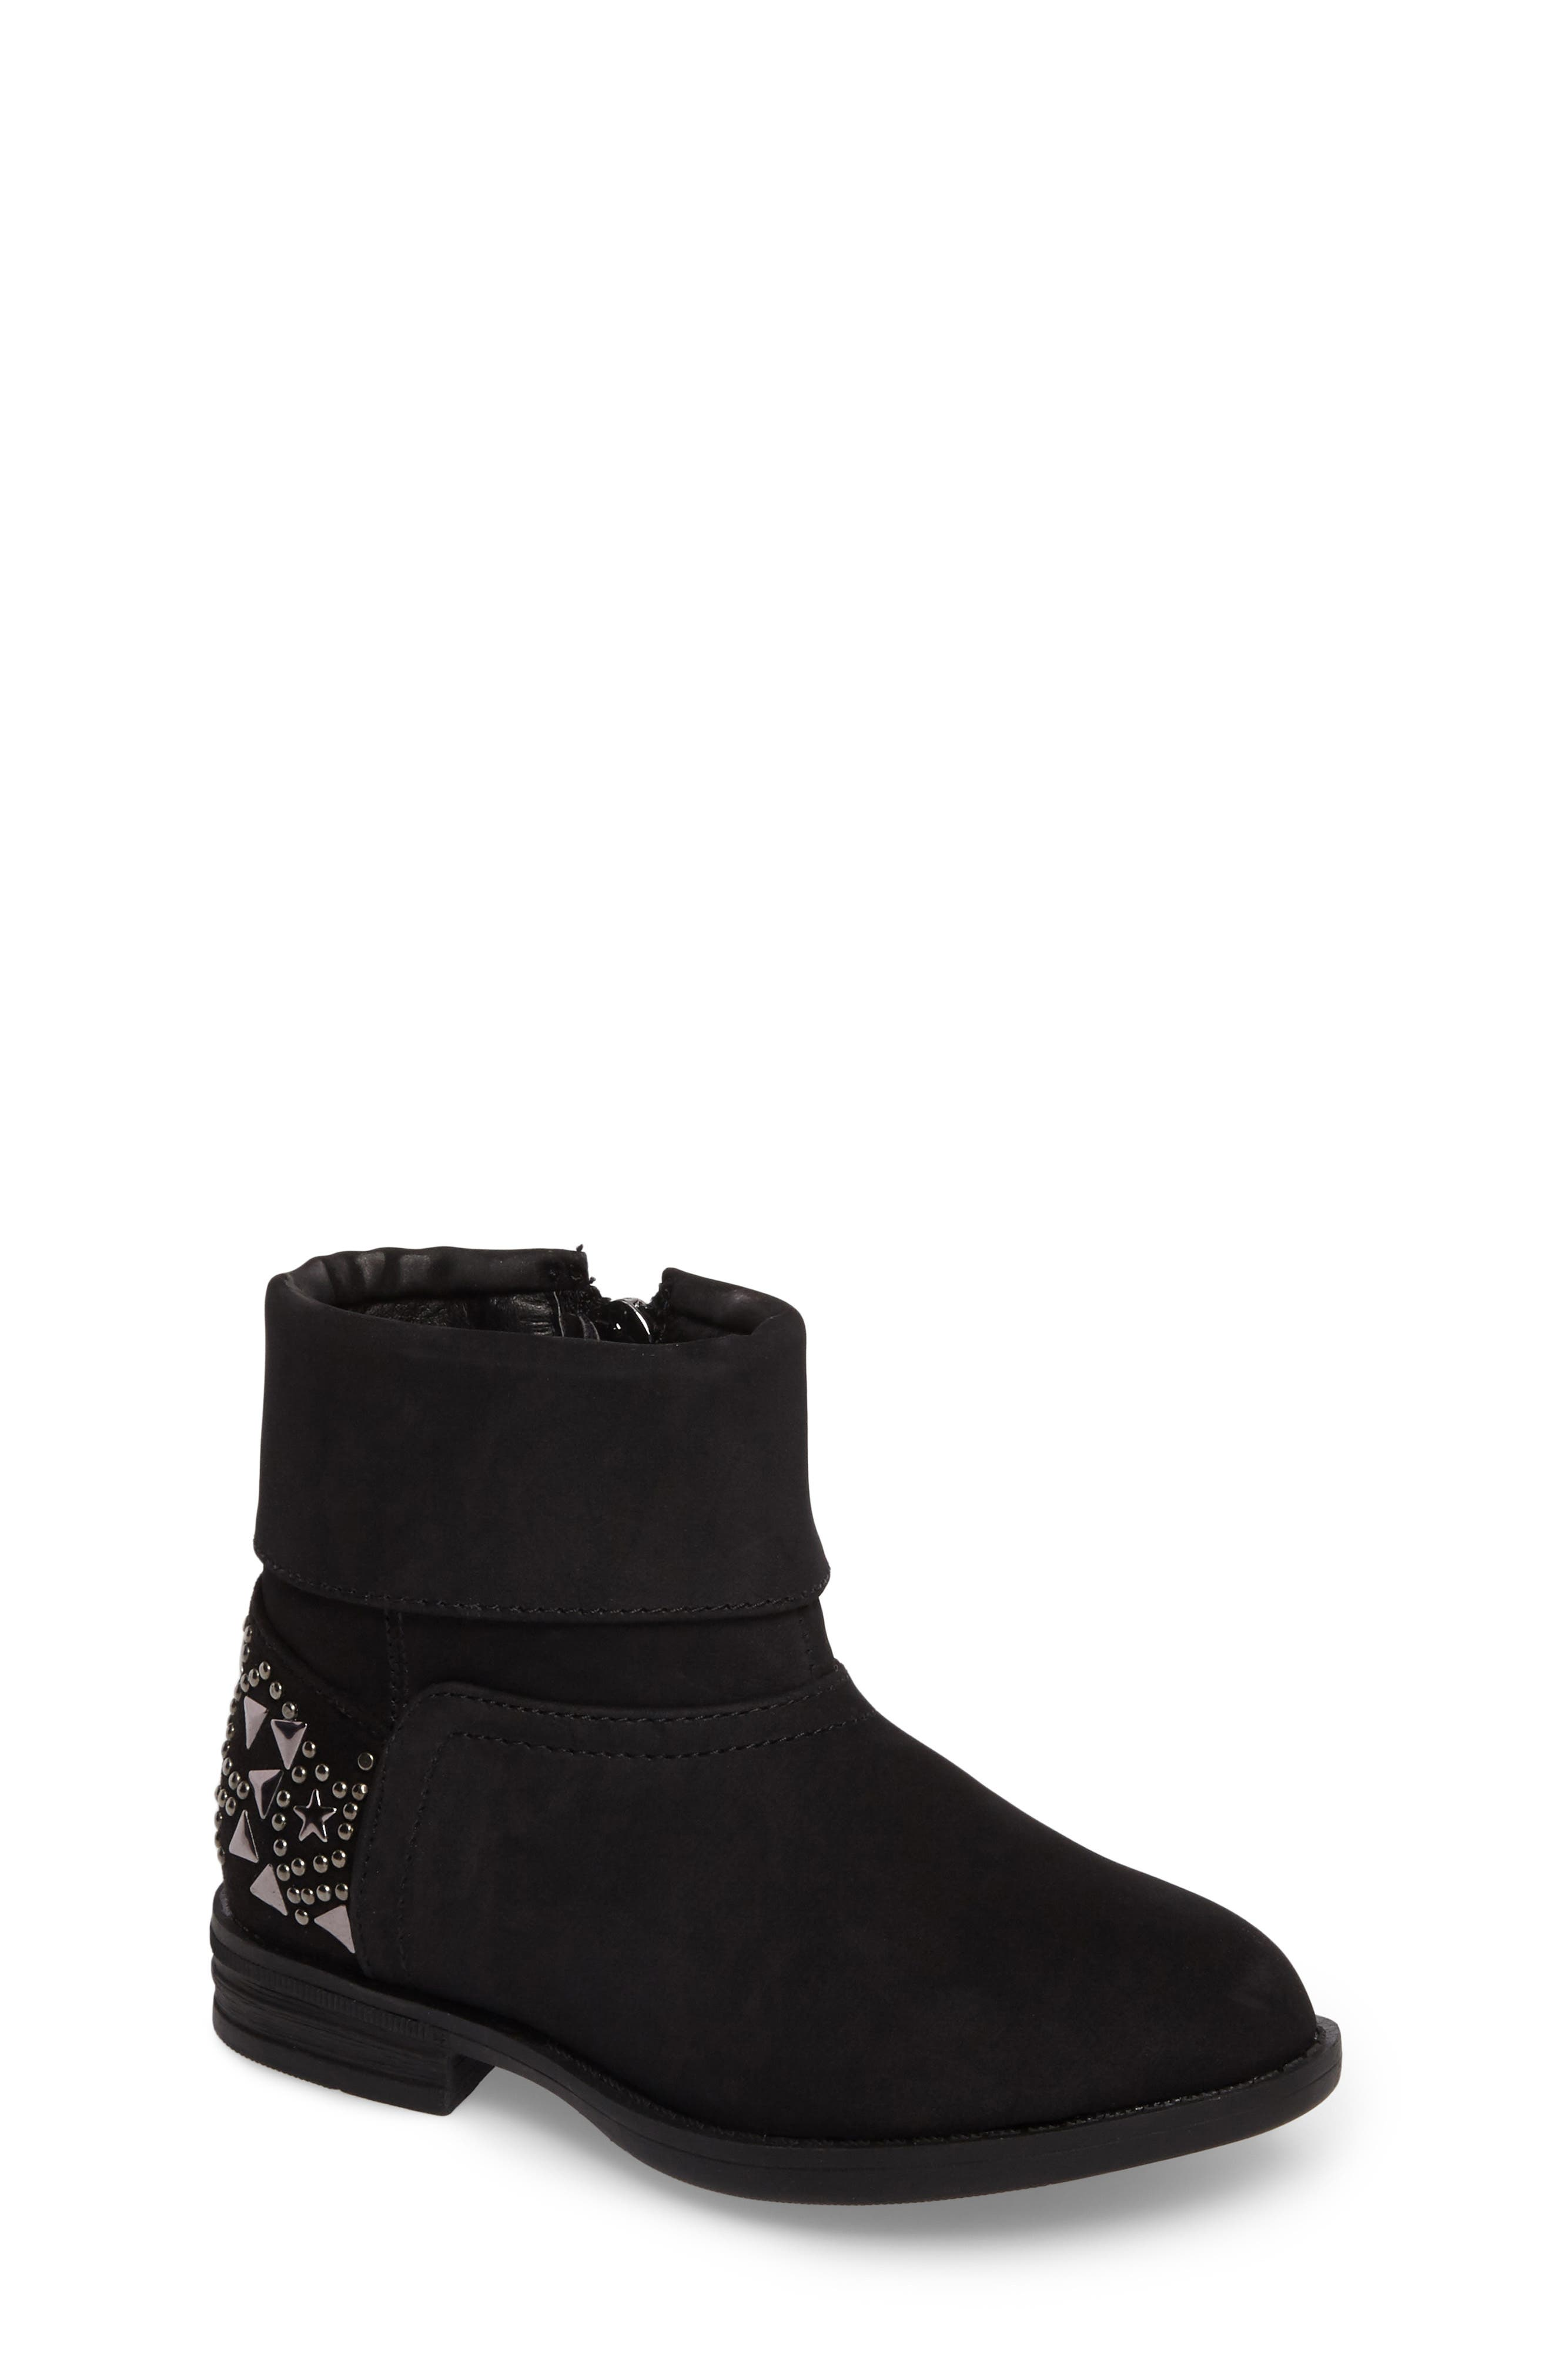 Reaction Kenneth Cole Wild Star Studded Bootie (Toddler)